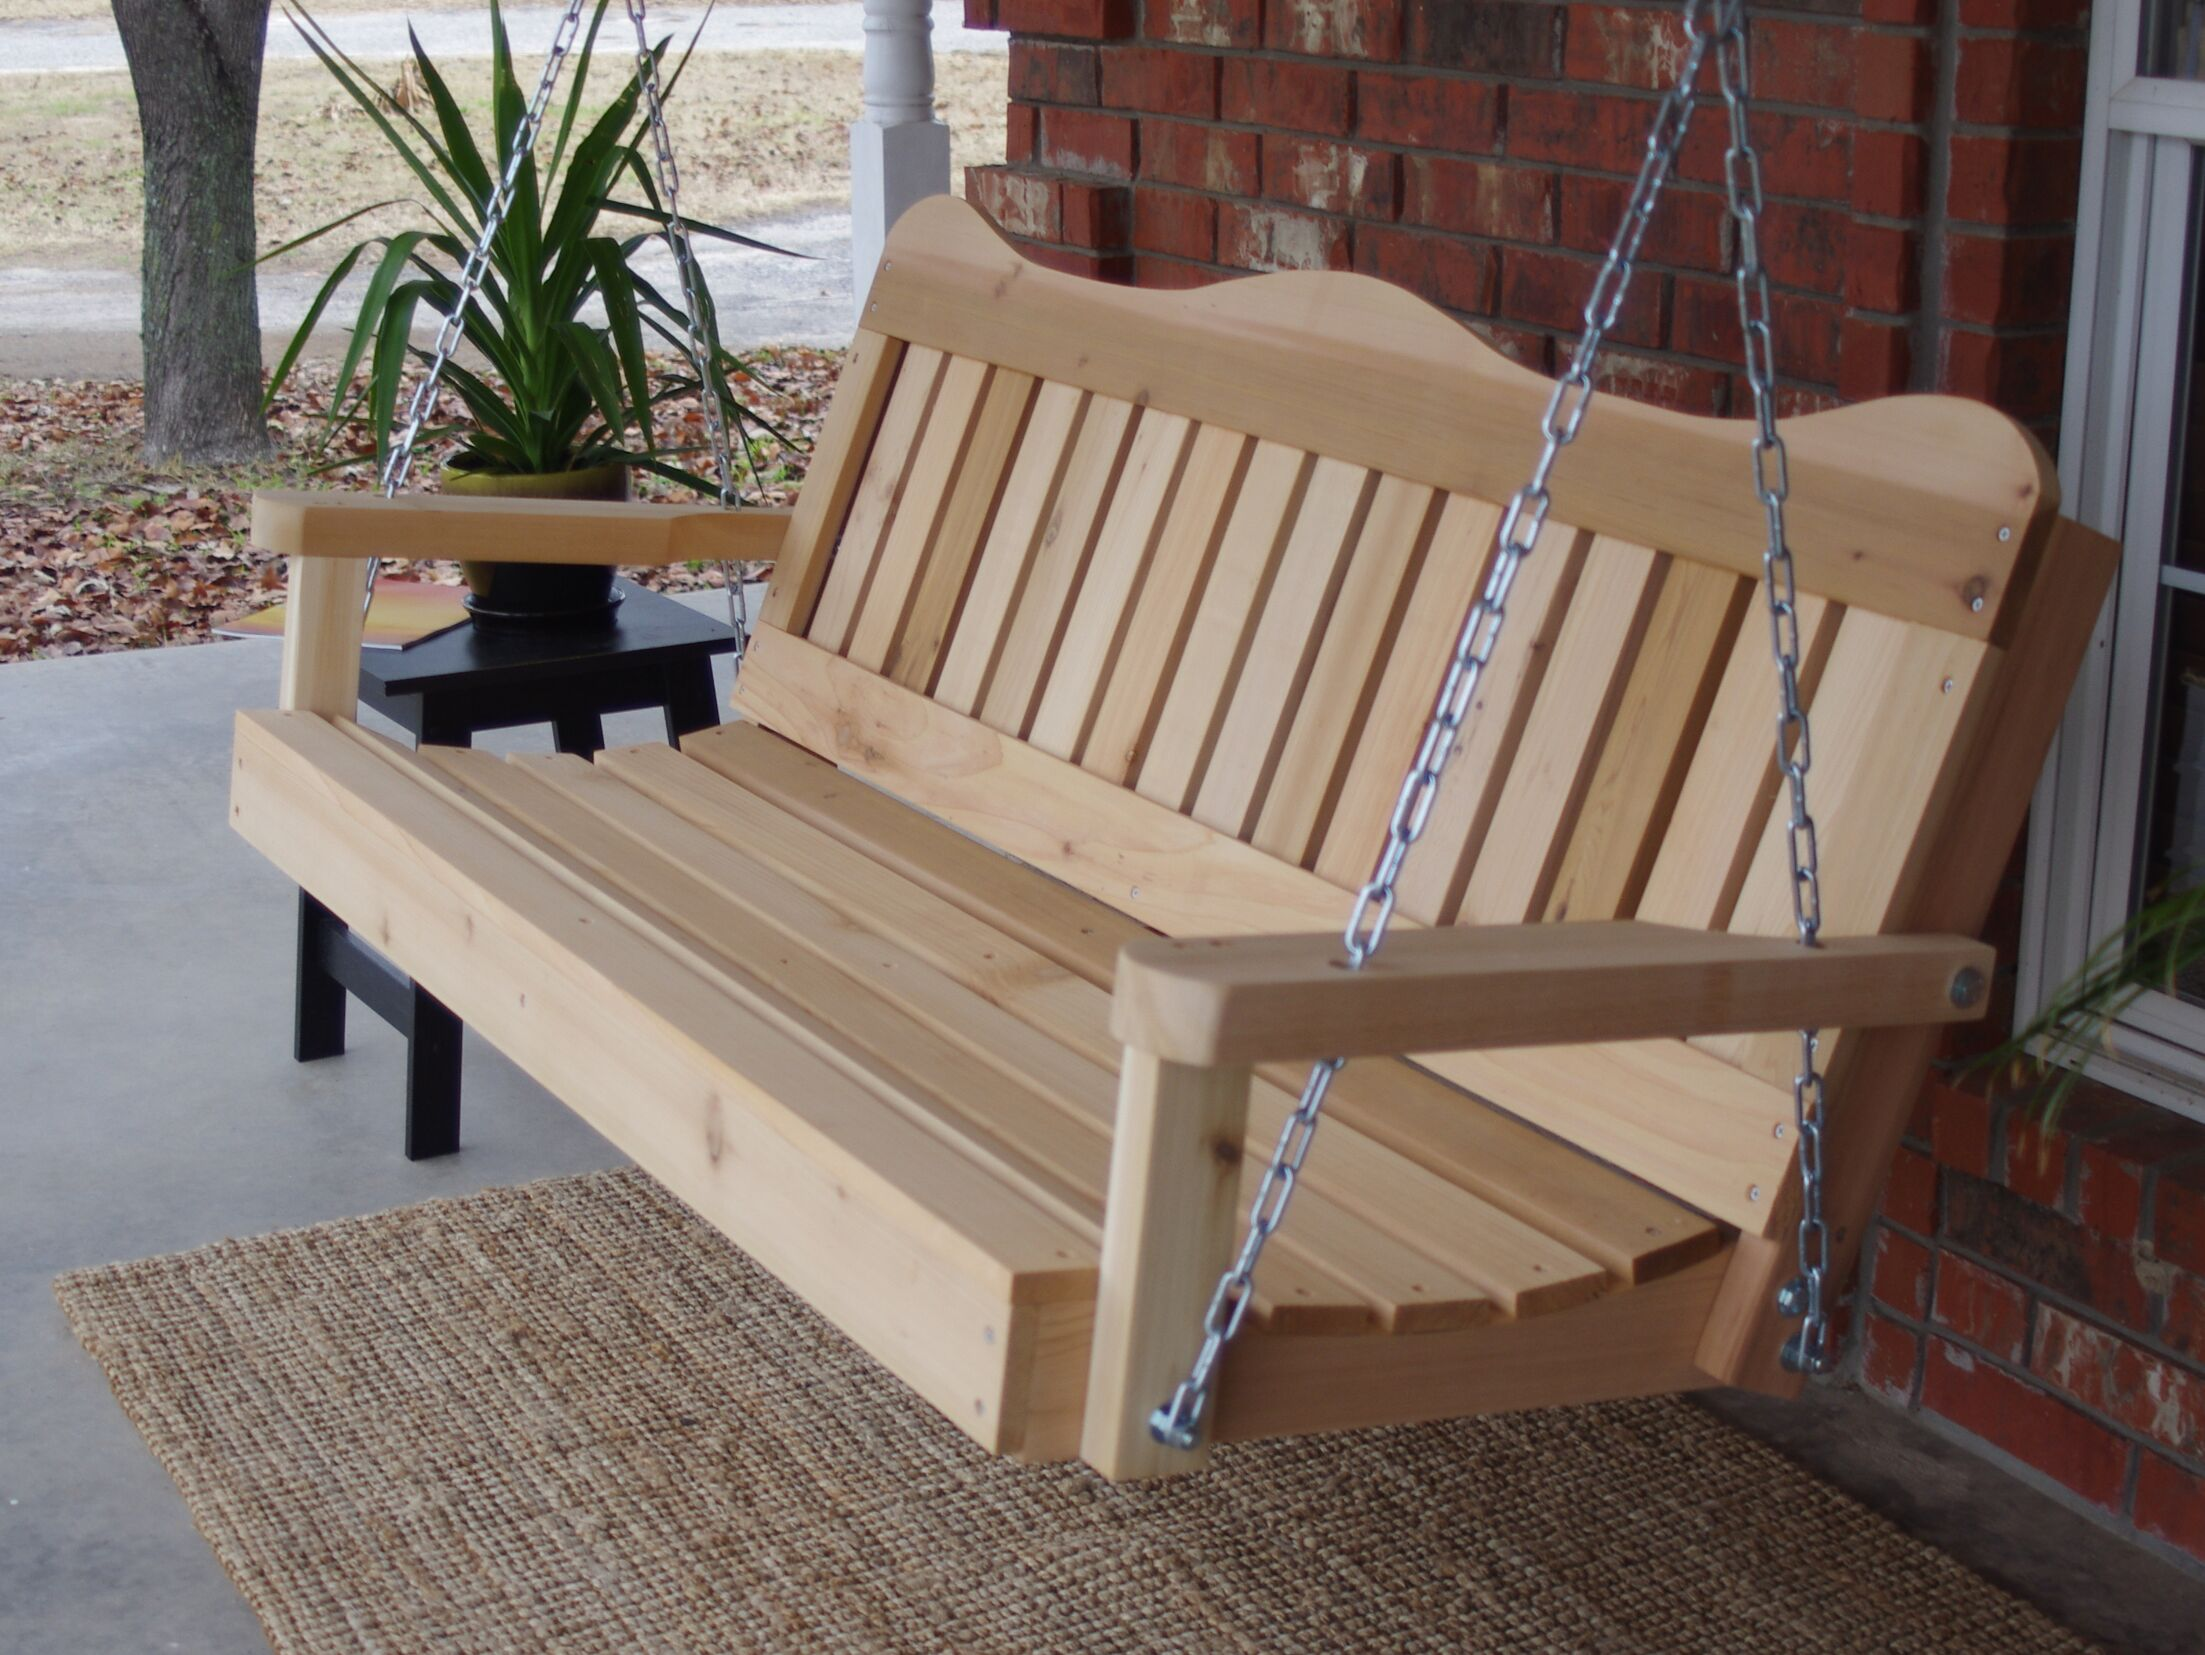 Galvin Porch Swing Finish: Stained/Regular, Size: 25'' H x 88.5'' W x 27.5'' D